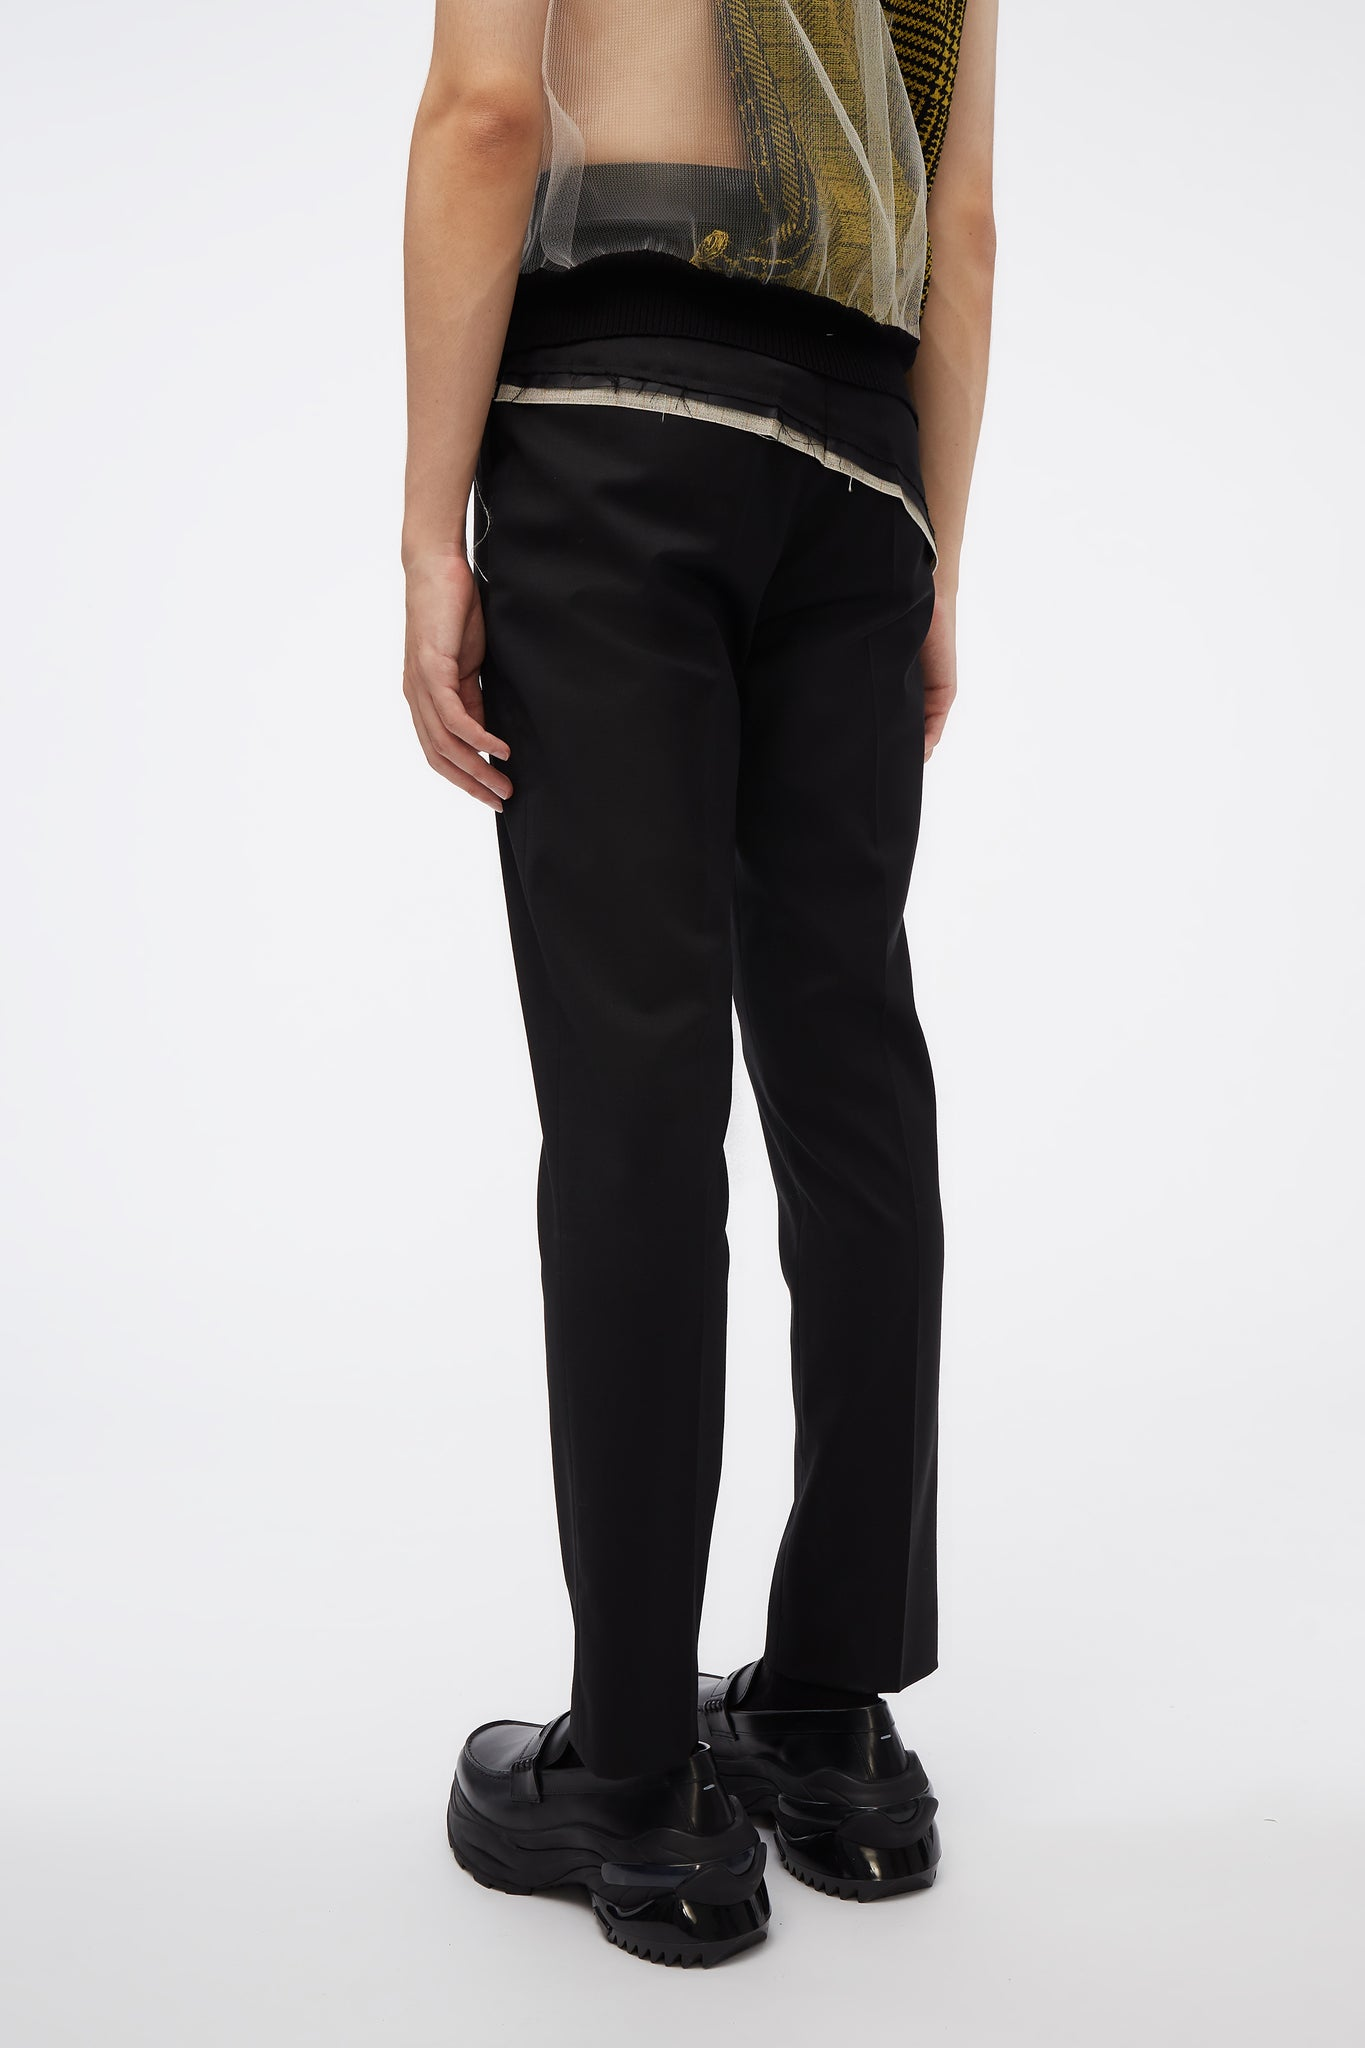 D'angelo Trousers W/ Raw Panel Detail Black